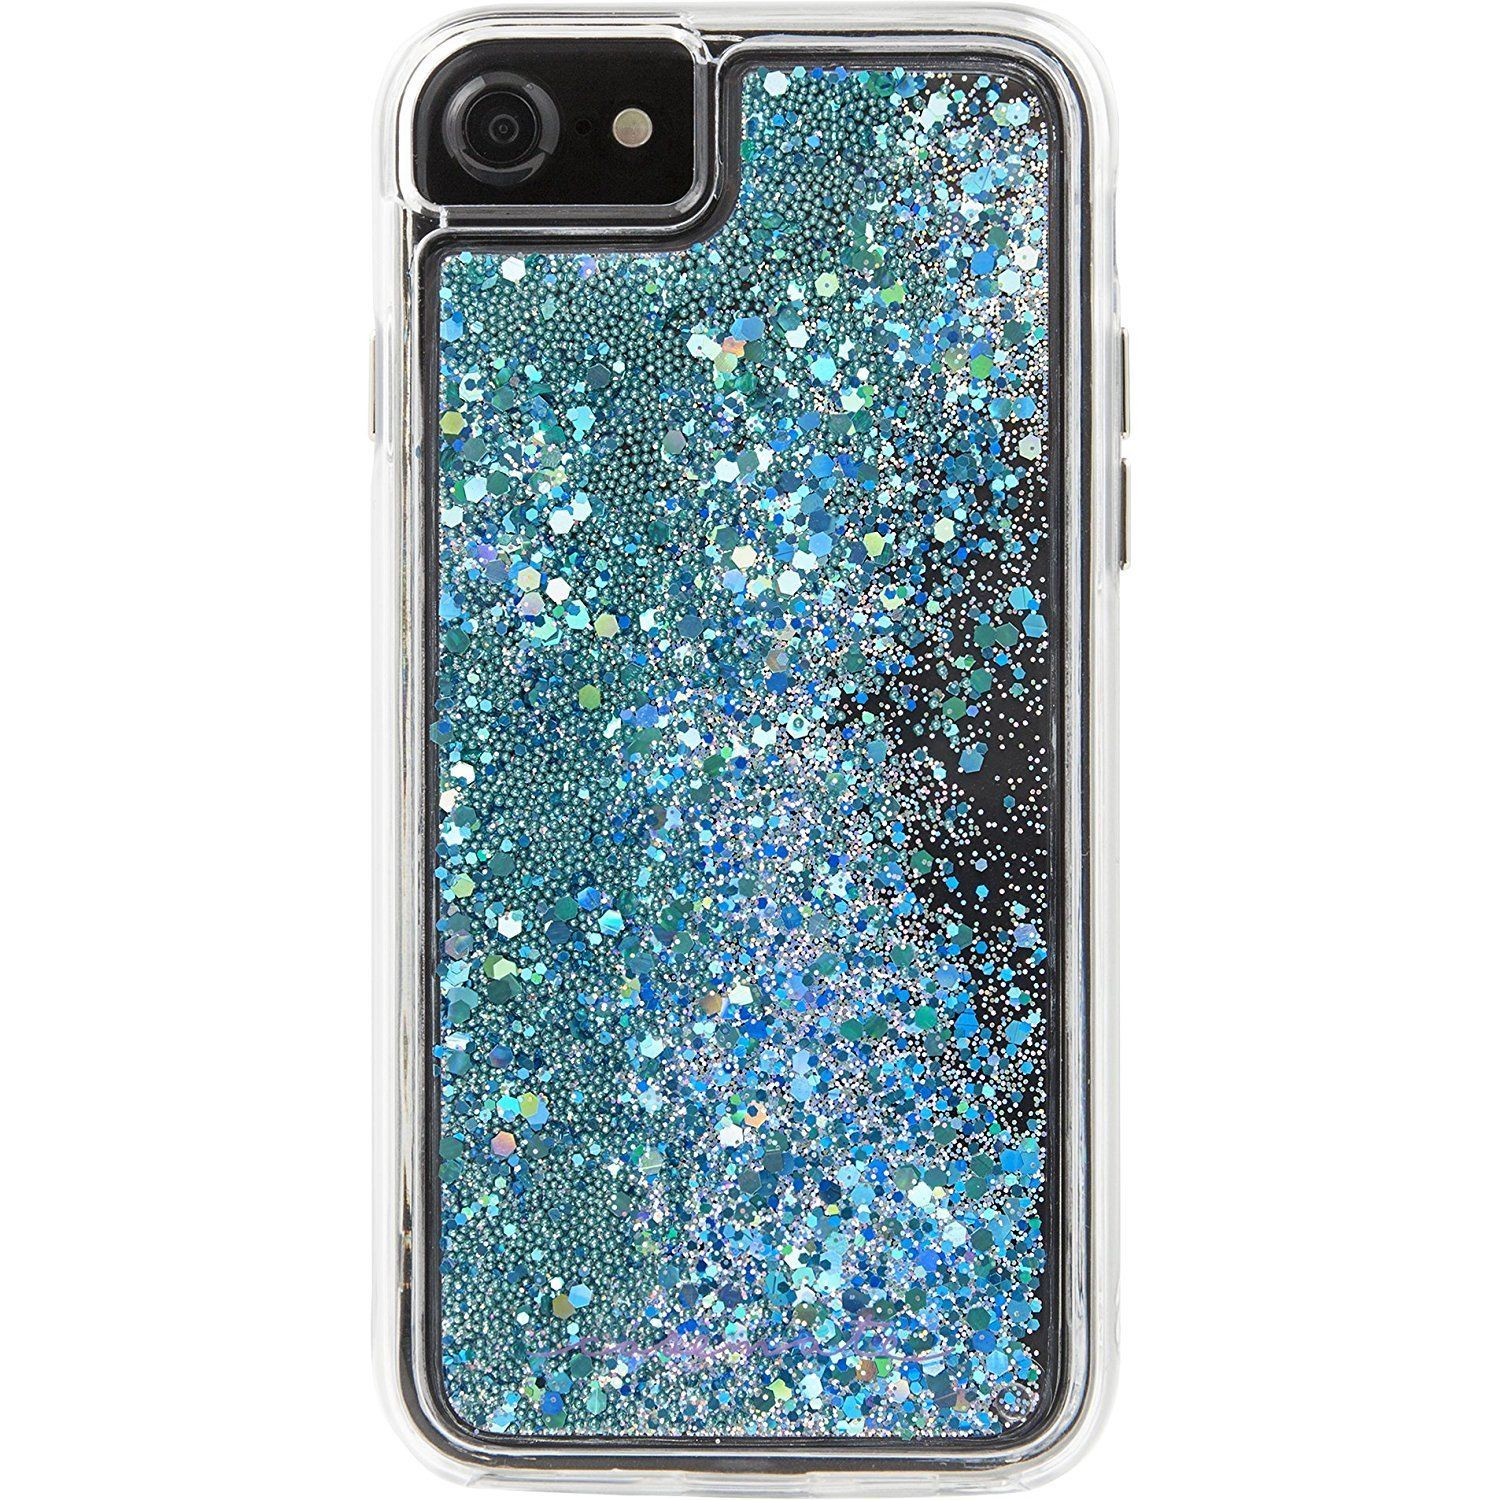 Casemate Waterfall Case for iPhone 6 (S) and 7 - Blue | by Covers Online